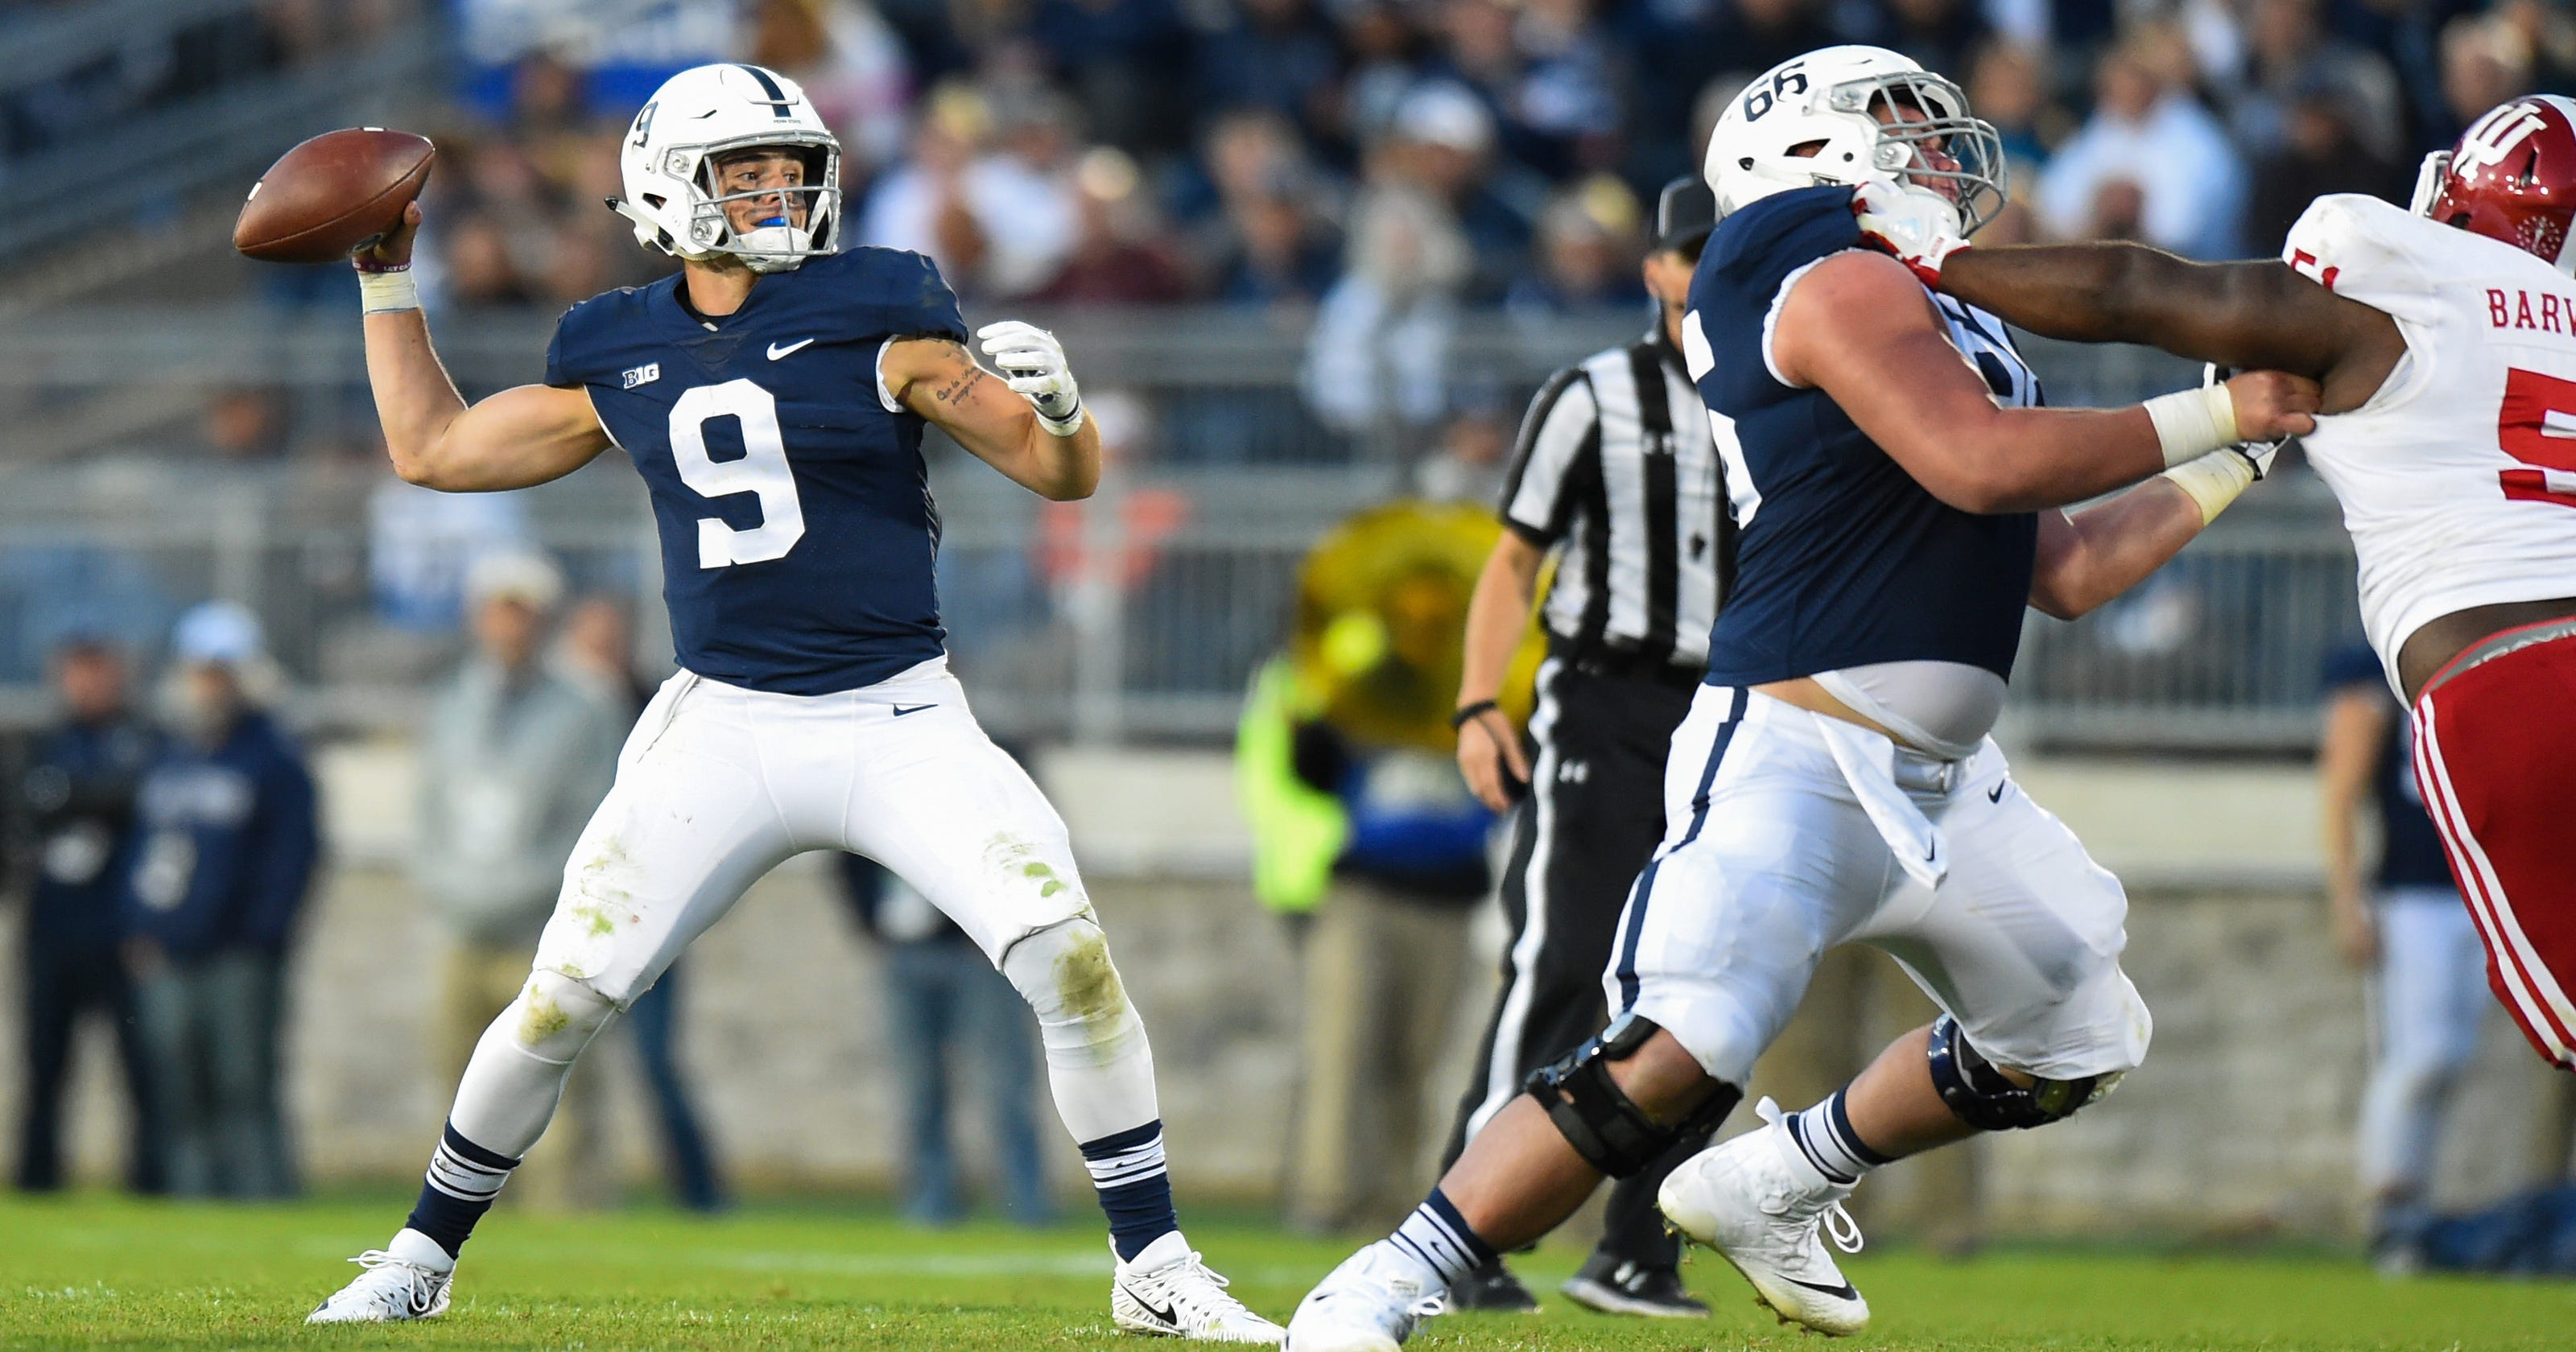 Saquon Barkley is the star in Penn State s offense c7442897f